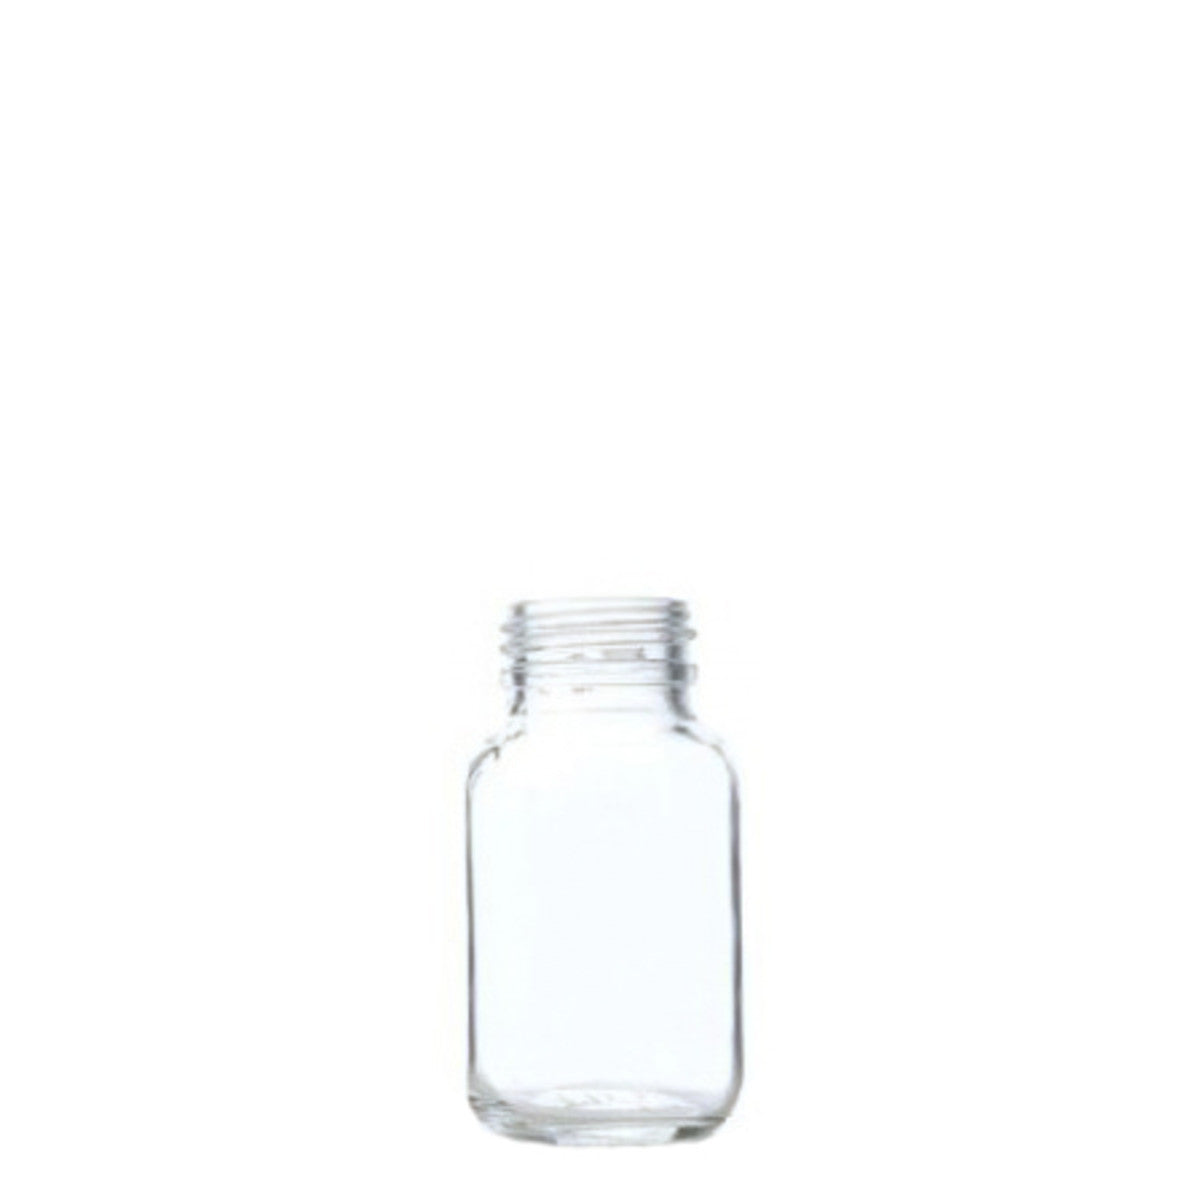 Lifefactory 4 oz Replacement Glass Bottles